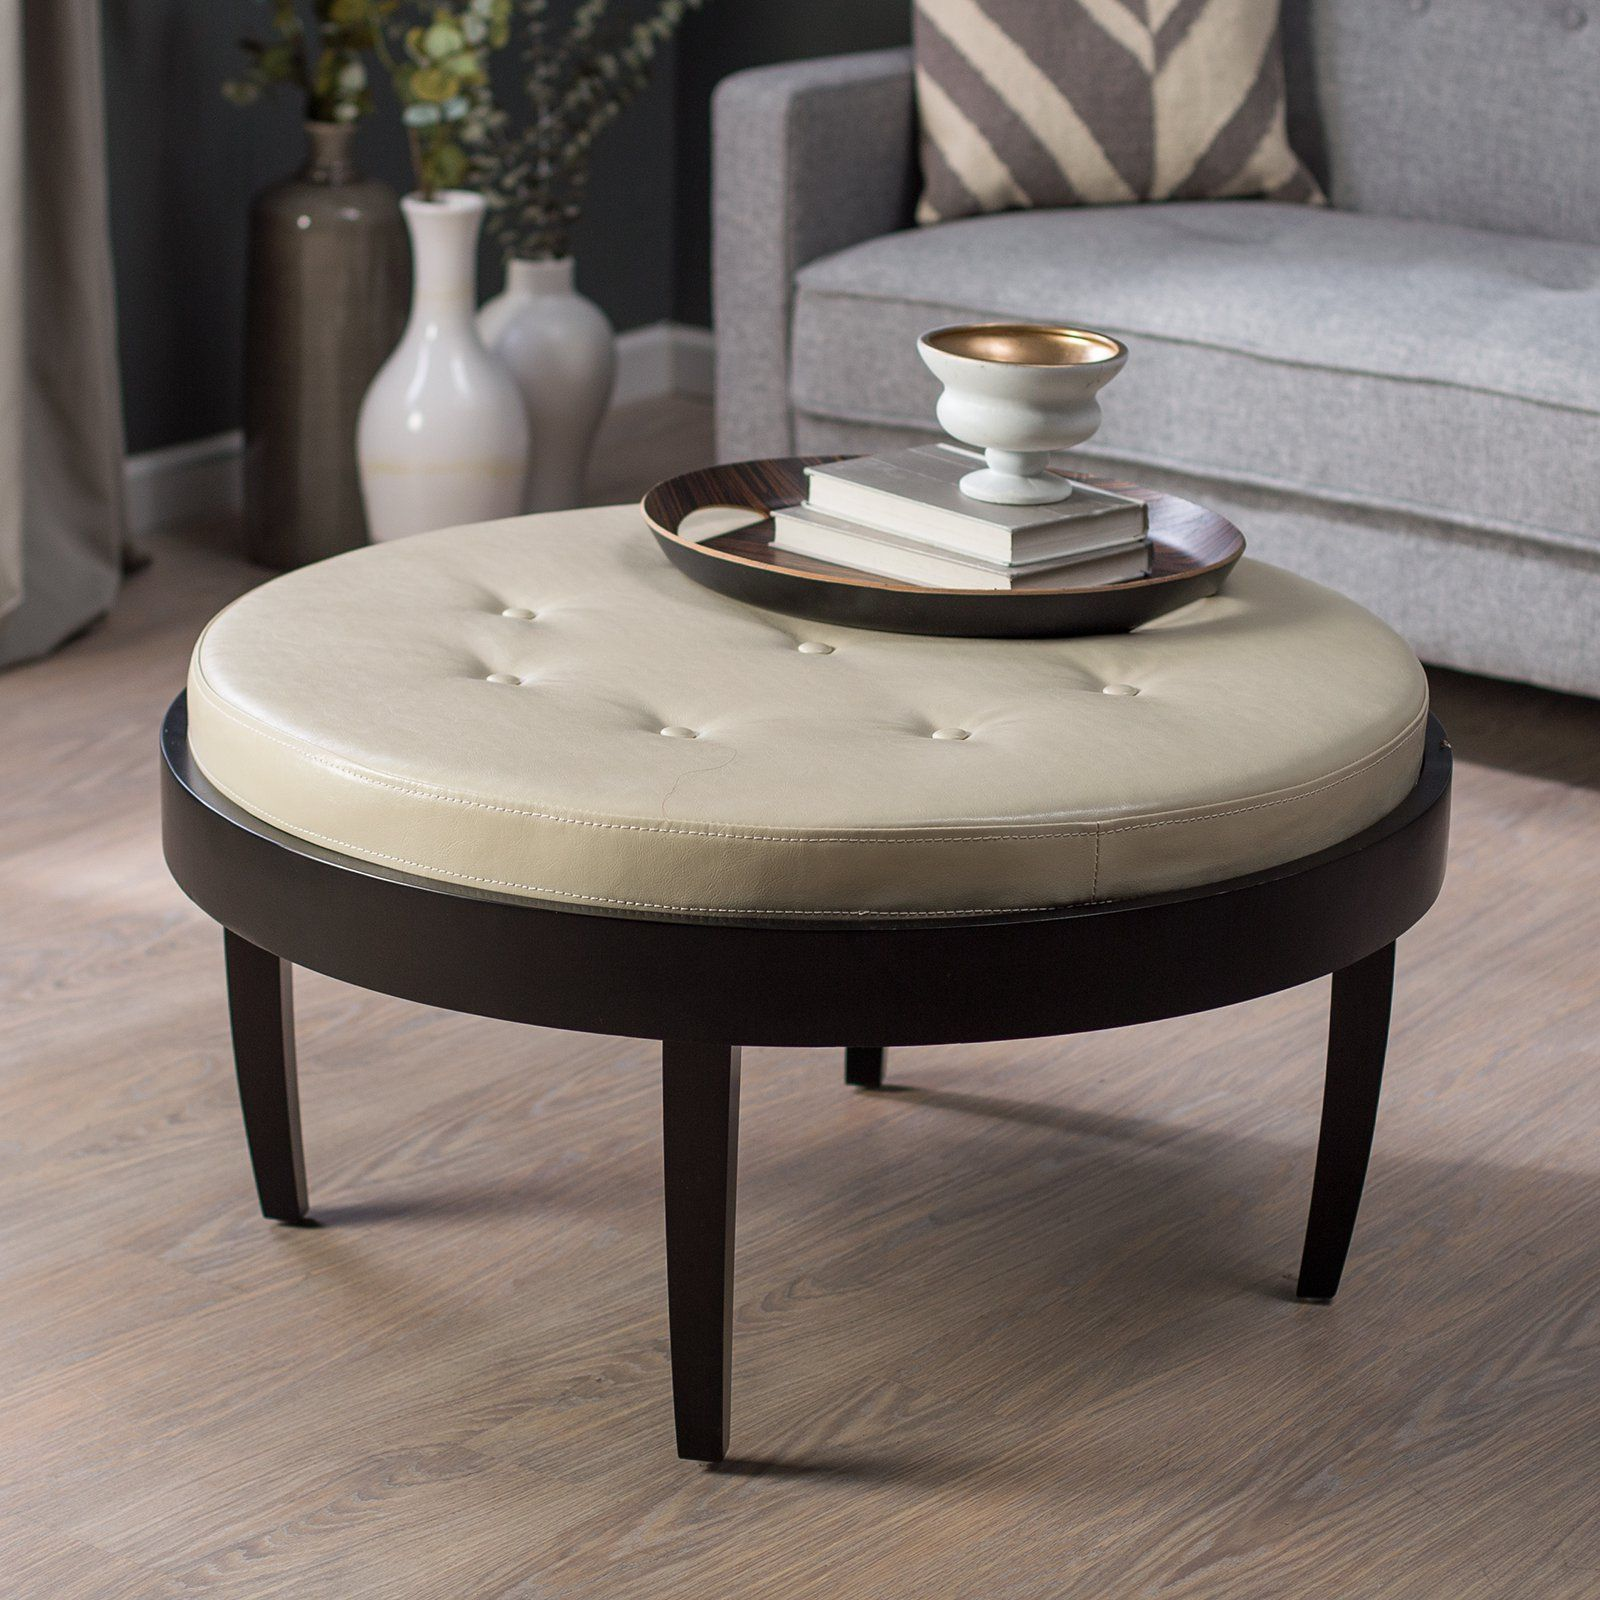 Exceptionnel Citation Coffee Table Ottoman With Removable Cushion   $240.99 @hayneedle